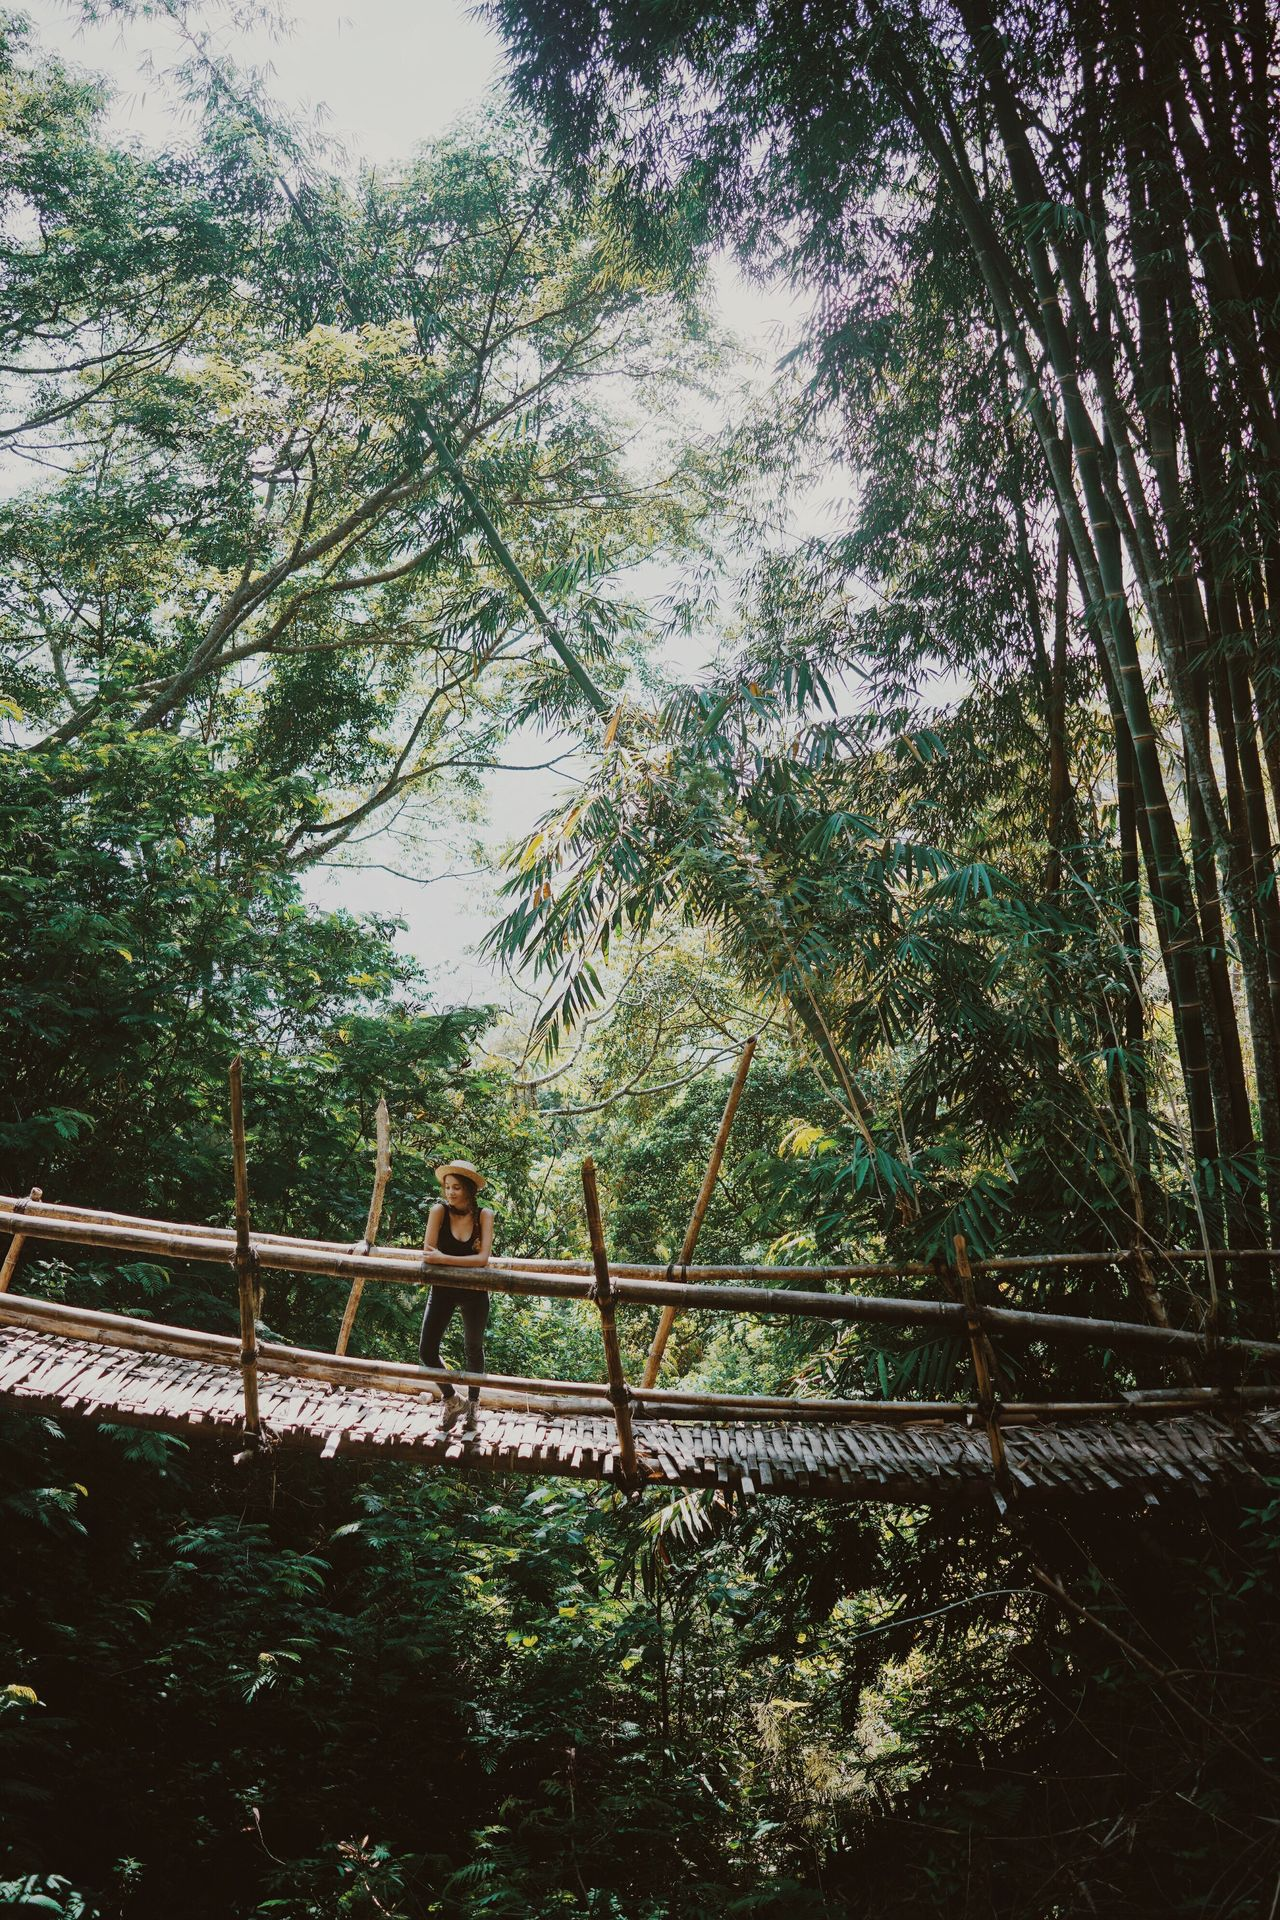 Bridge Rainforest Bamboo Green Vegetation Outdoors Nature Beauty In Nature Forest Girl Young Woman Hiking Adventure Lush Greenery Traveling ASIA INDONESIA Flores Wae Rebo Hat Tropical Paradise Exploring Travel Destinations Day